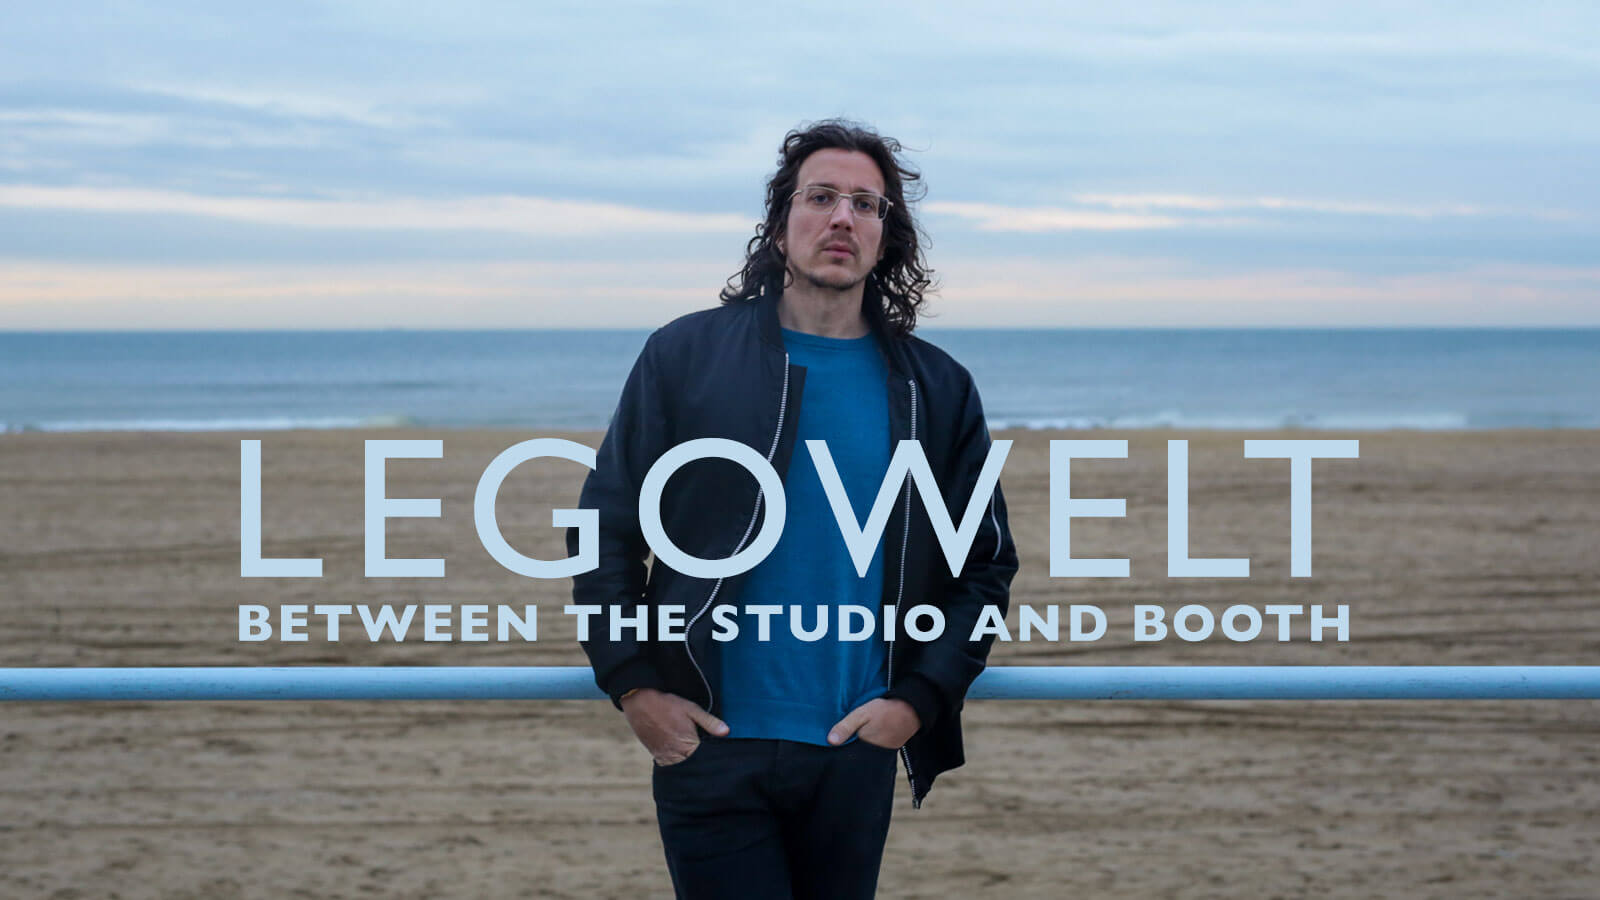 Between the Studio and Booth: Legowelt